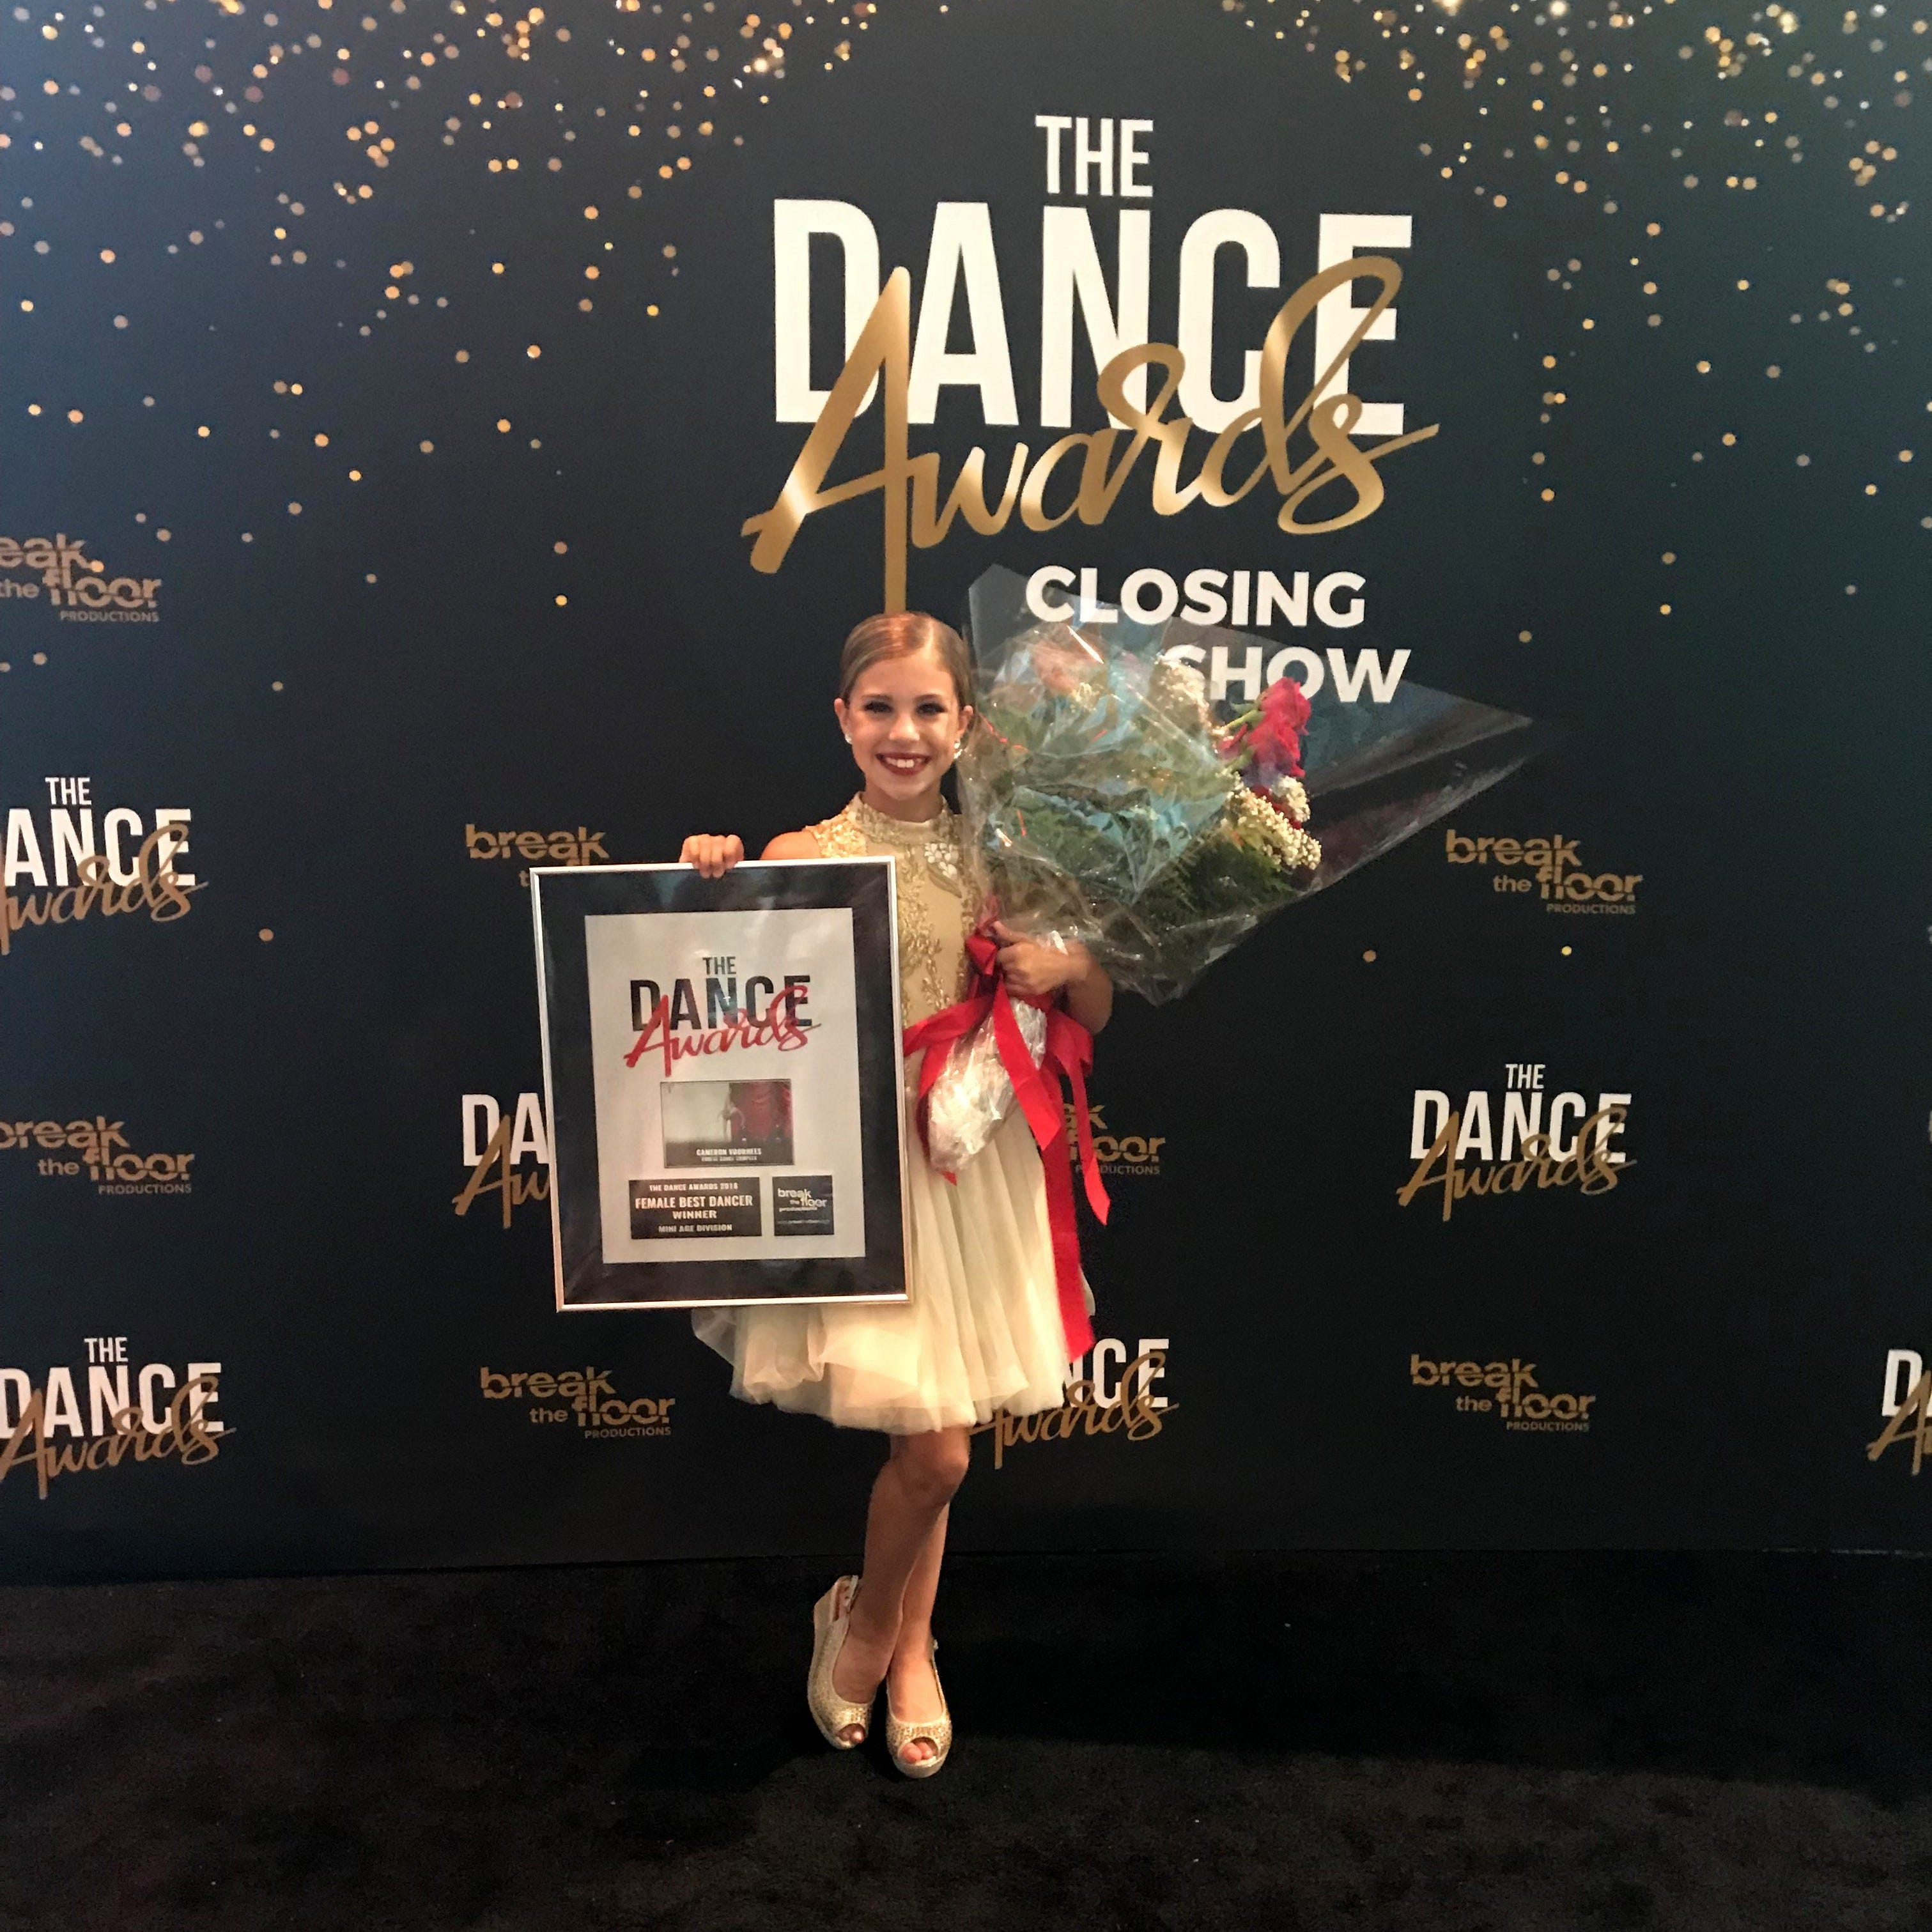 Dancing on air: Elmira's Cameron Voorhees captures title at The Dance Awards